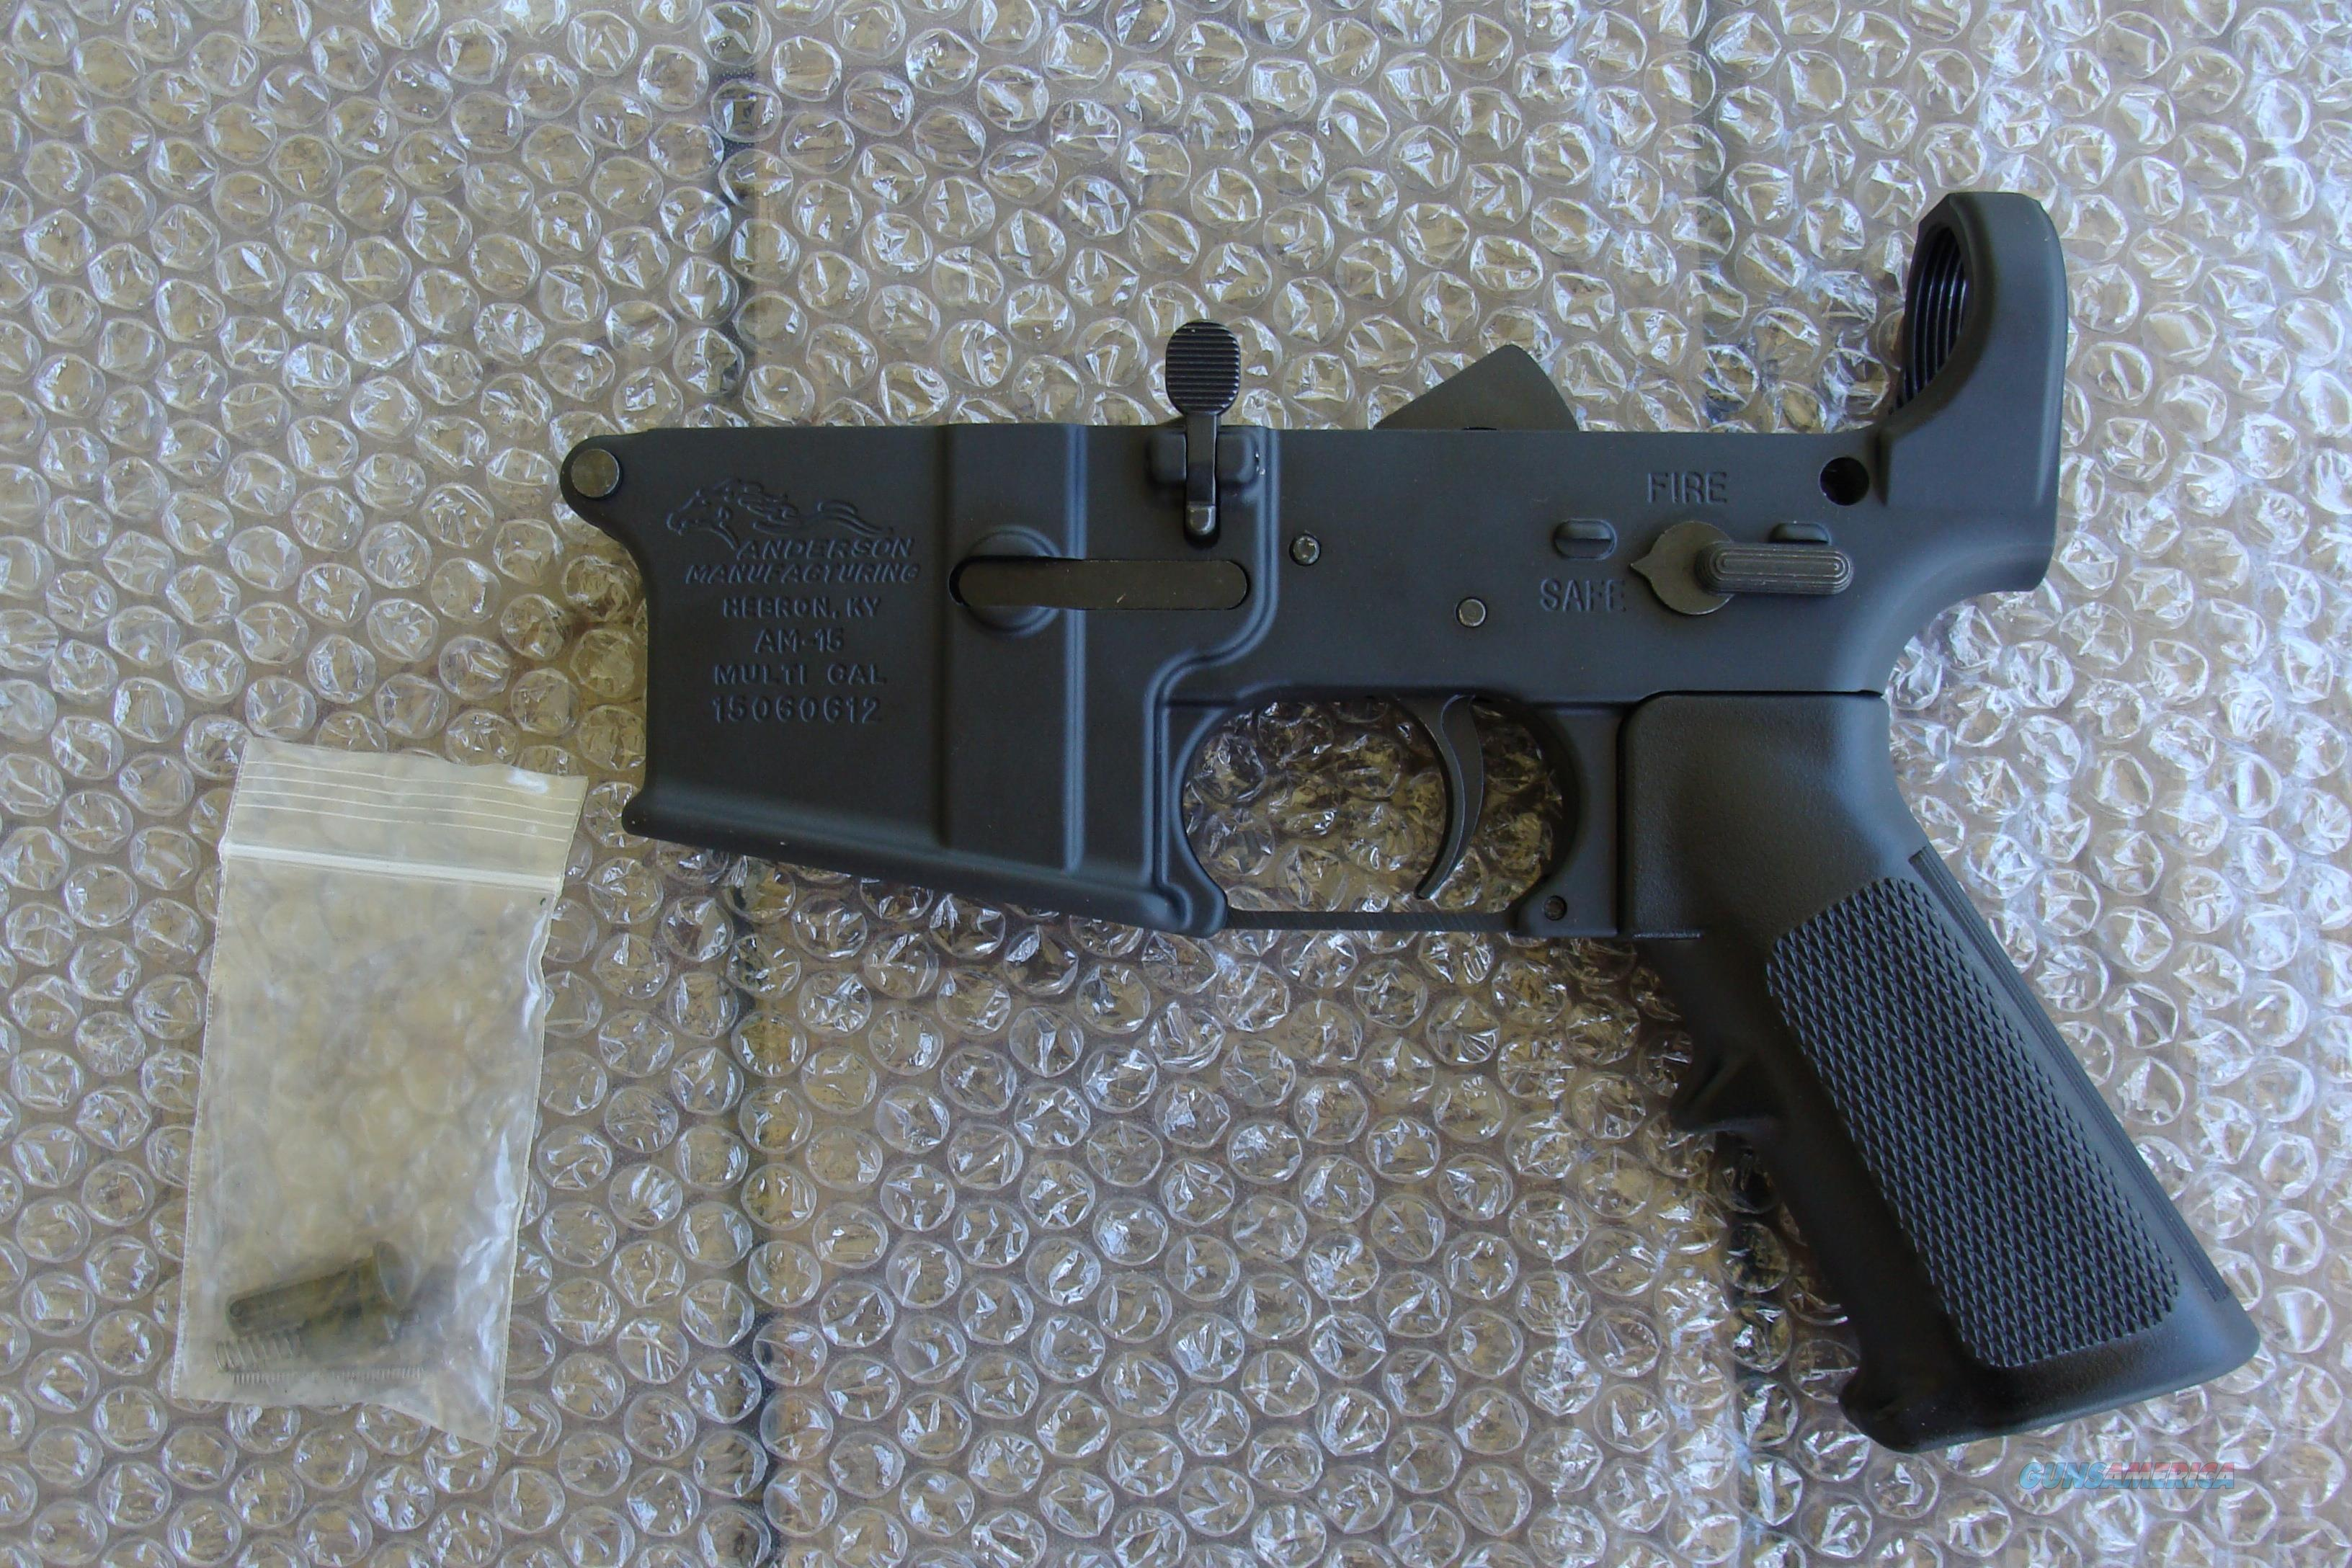 Anderson AR15 Mil-Spec Multi Cal Lower Reciever  W/Parts kit installed NEW  Guns > Rifles > AR-15 Rifles - Small Manufacturers > Lower Only